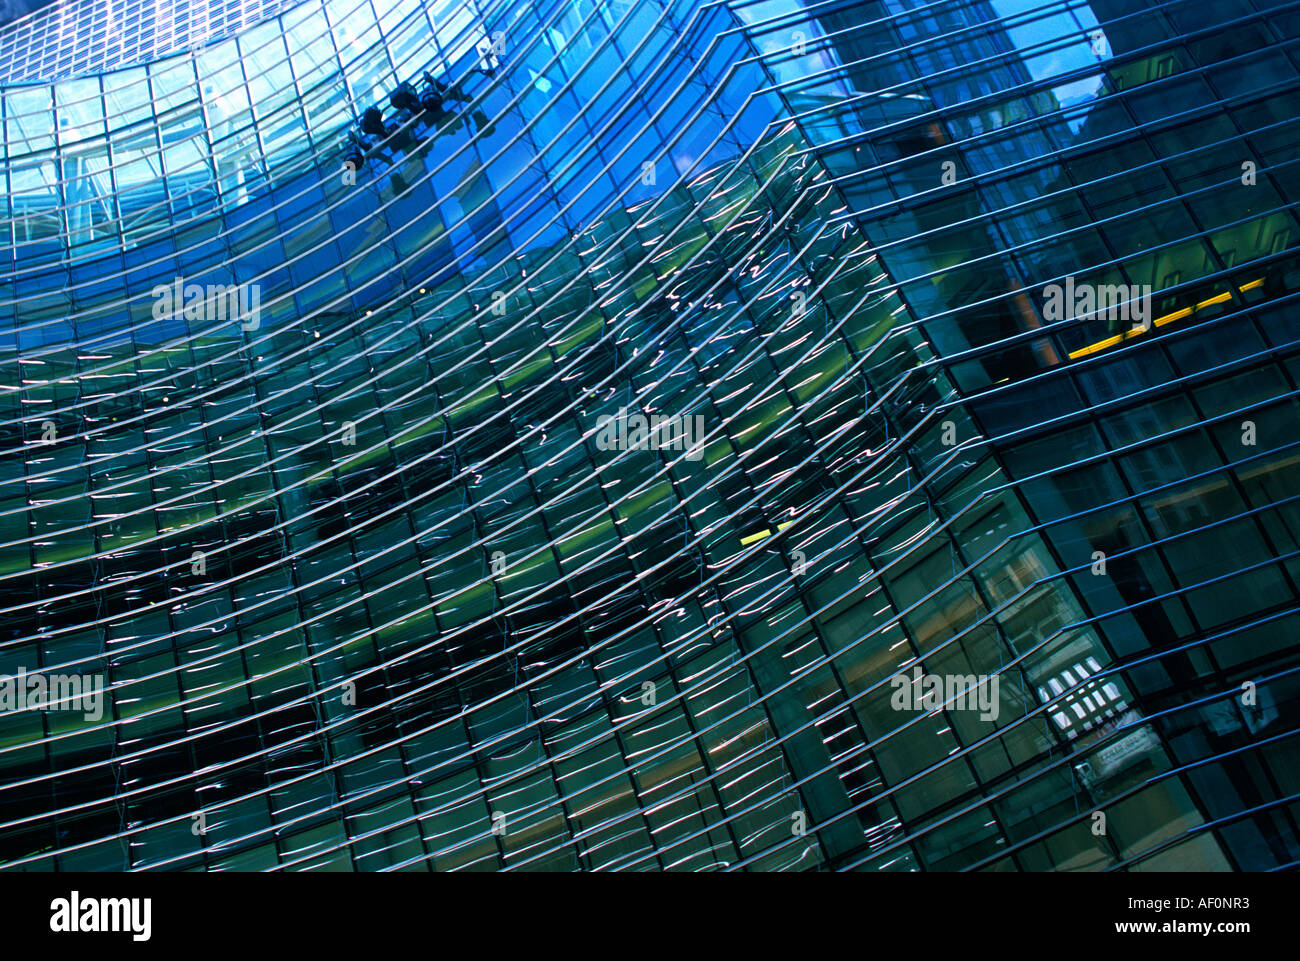 The Bloomberg Tower Midtown Manhattan East Side New York City USA - Stock Image